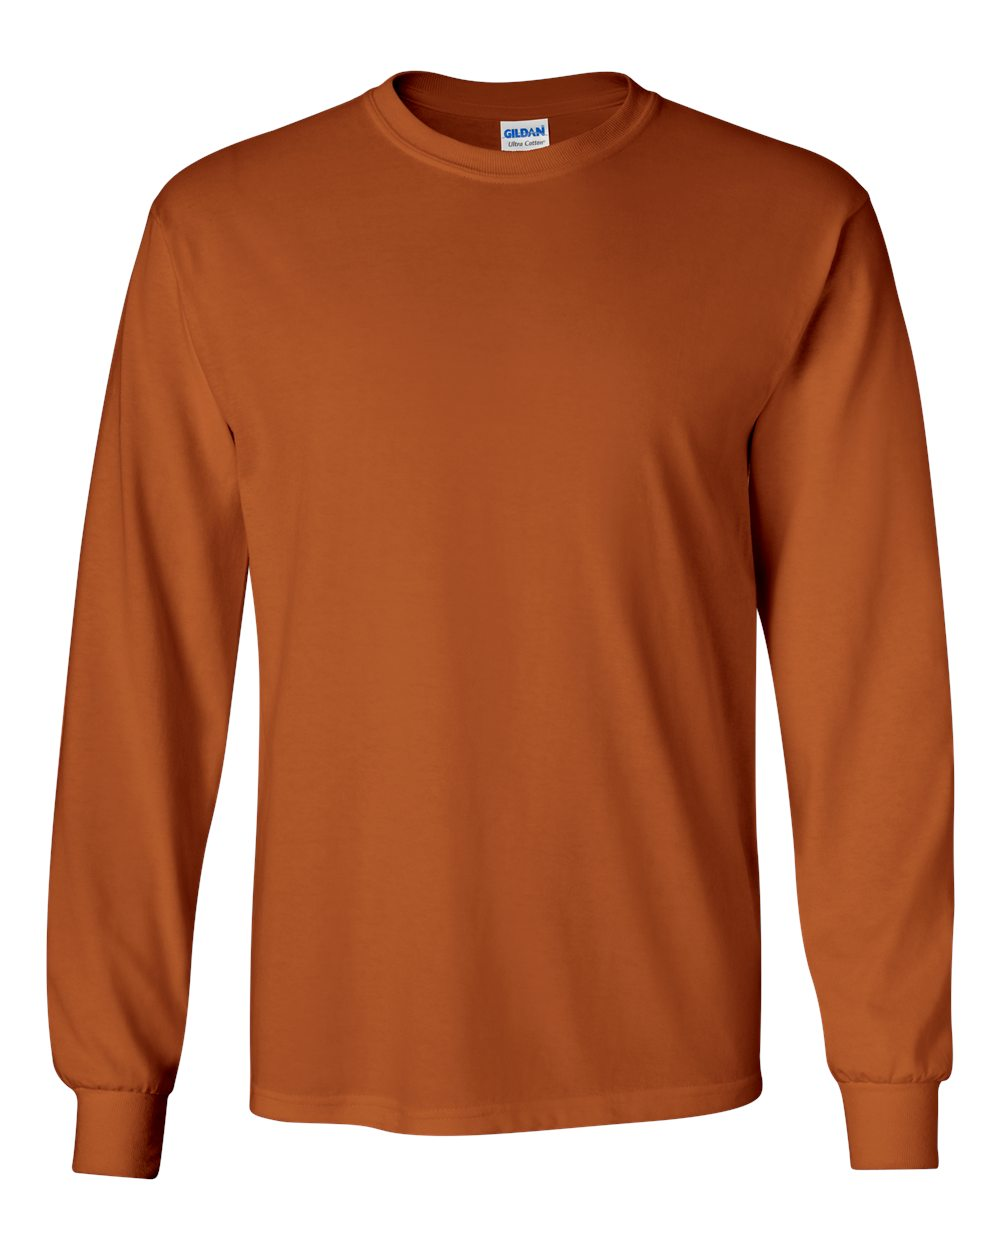 Gildan_2400_Texas_Orange_Front_High.jpg